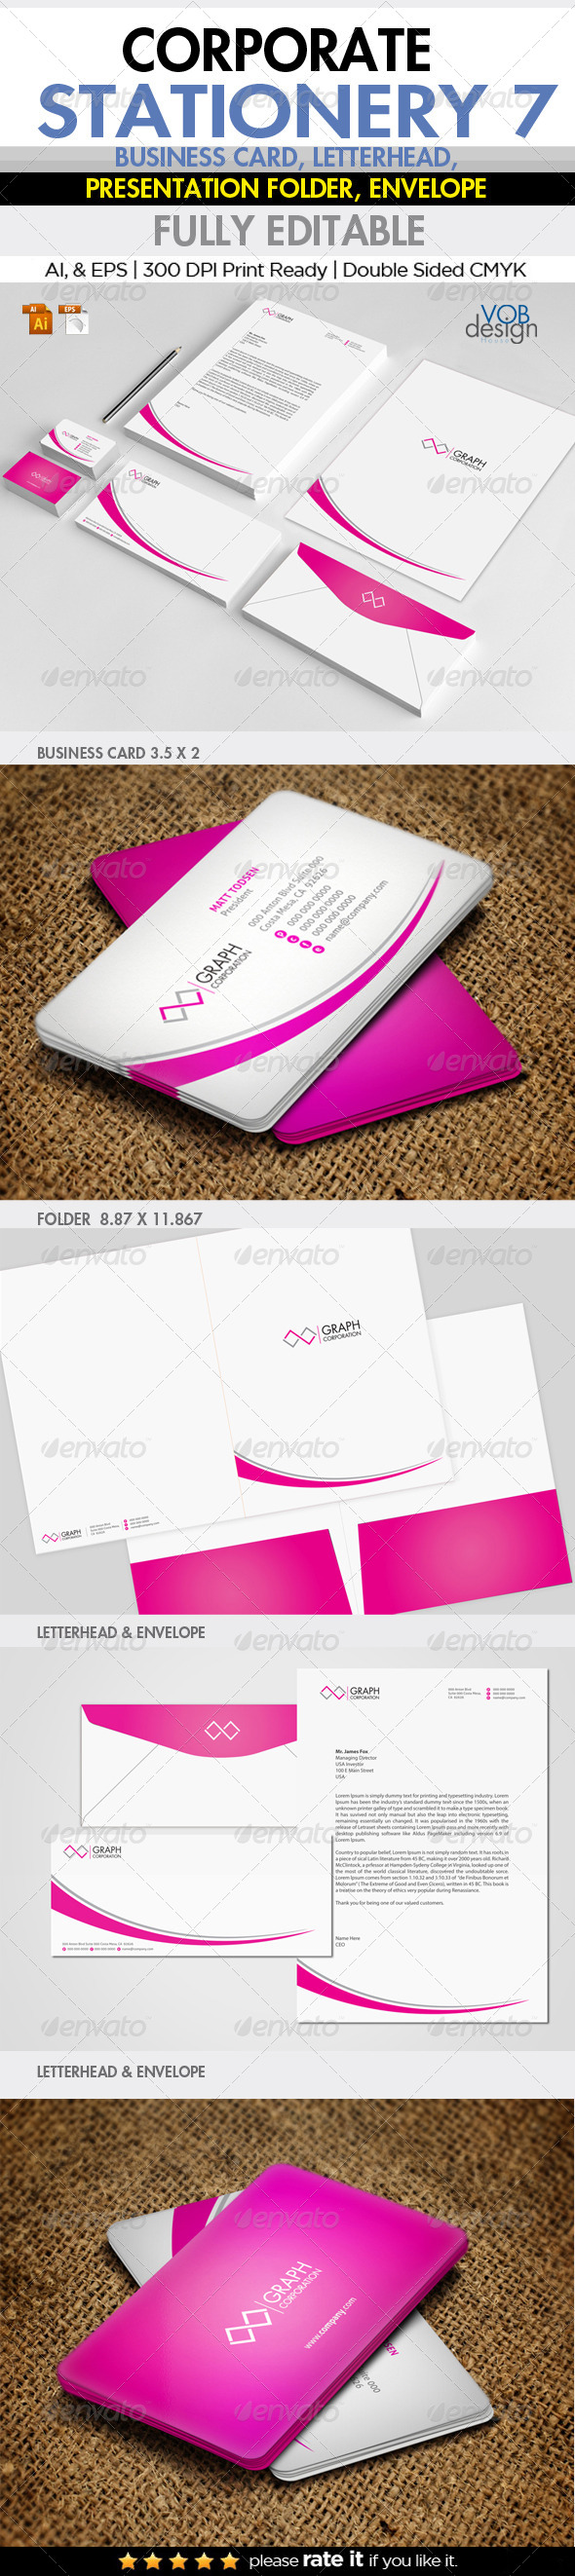 GraphicRiver Corporate Stationery 7 6252405